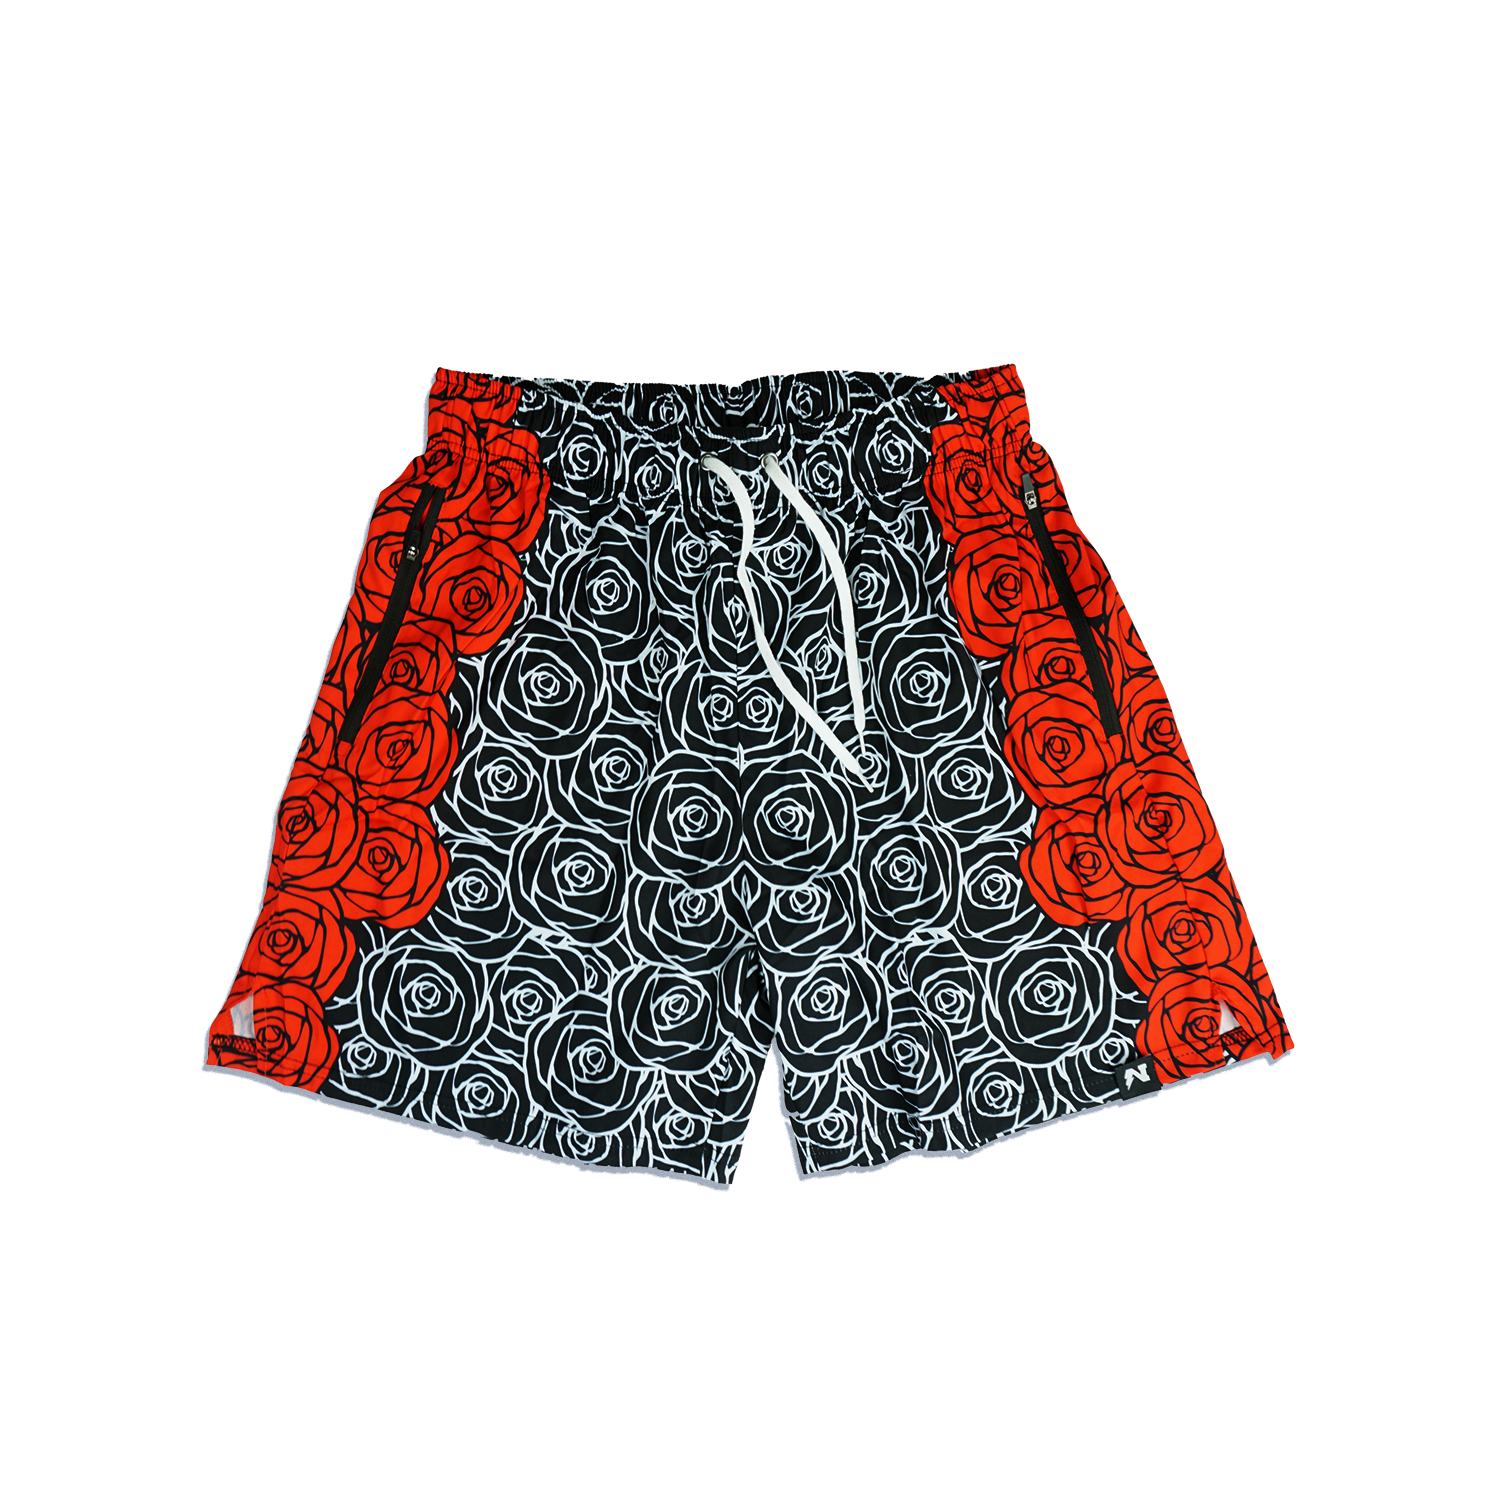 Rose City Hybrid Shorts - Black